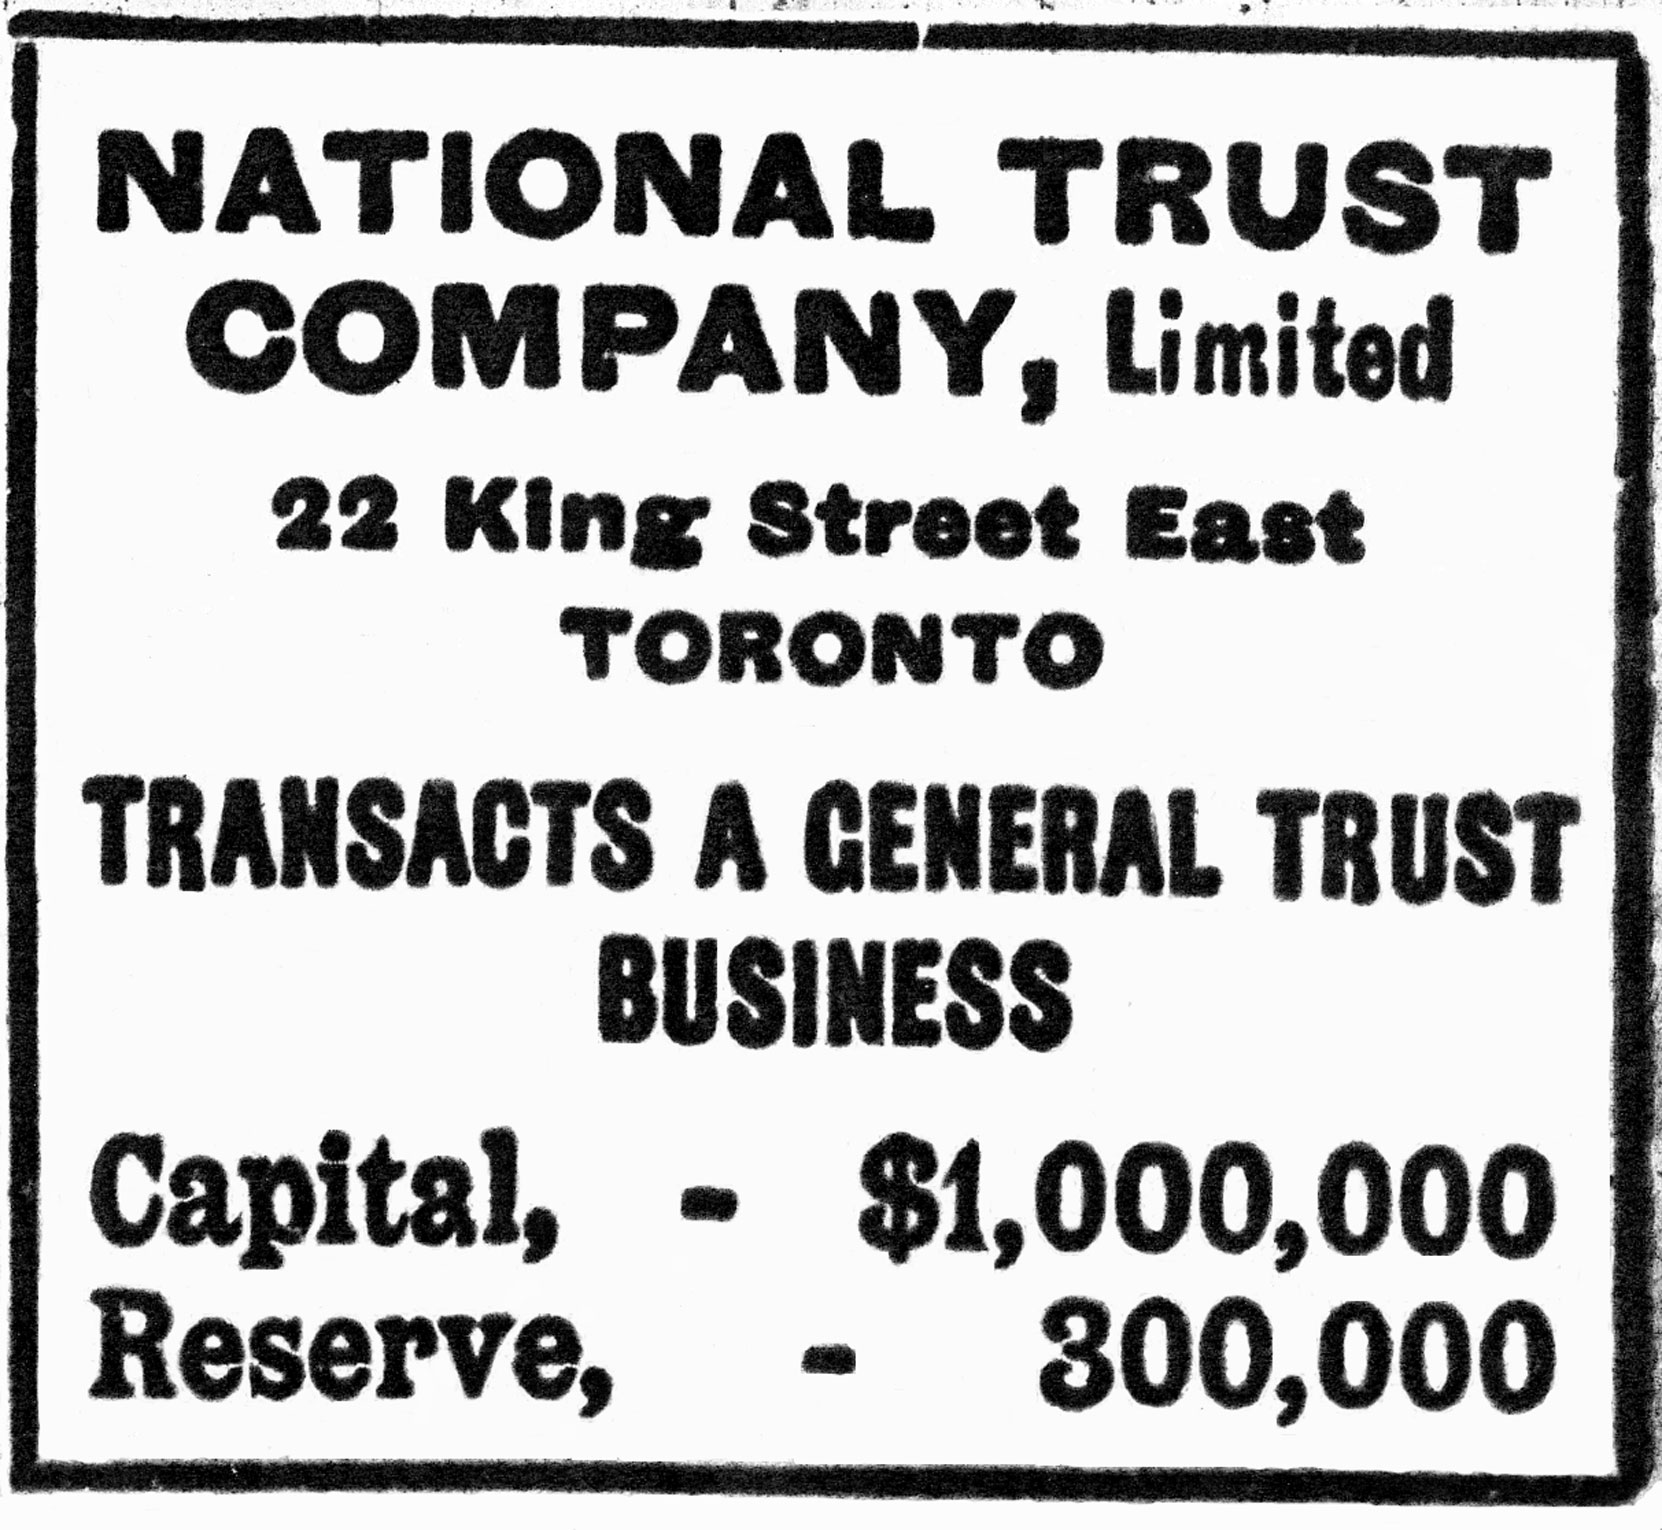 National Trust Company advertisement, 1904 (Author's collection)